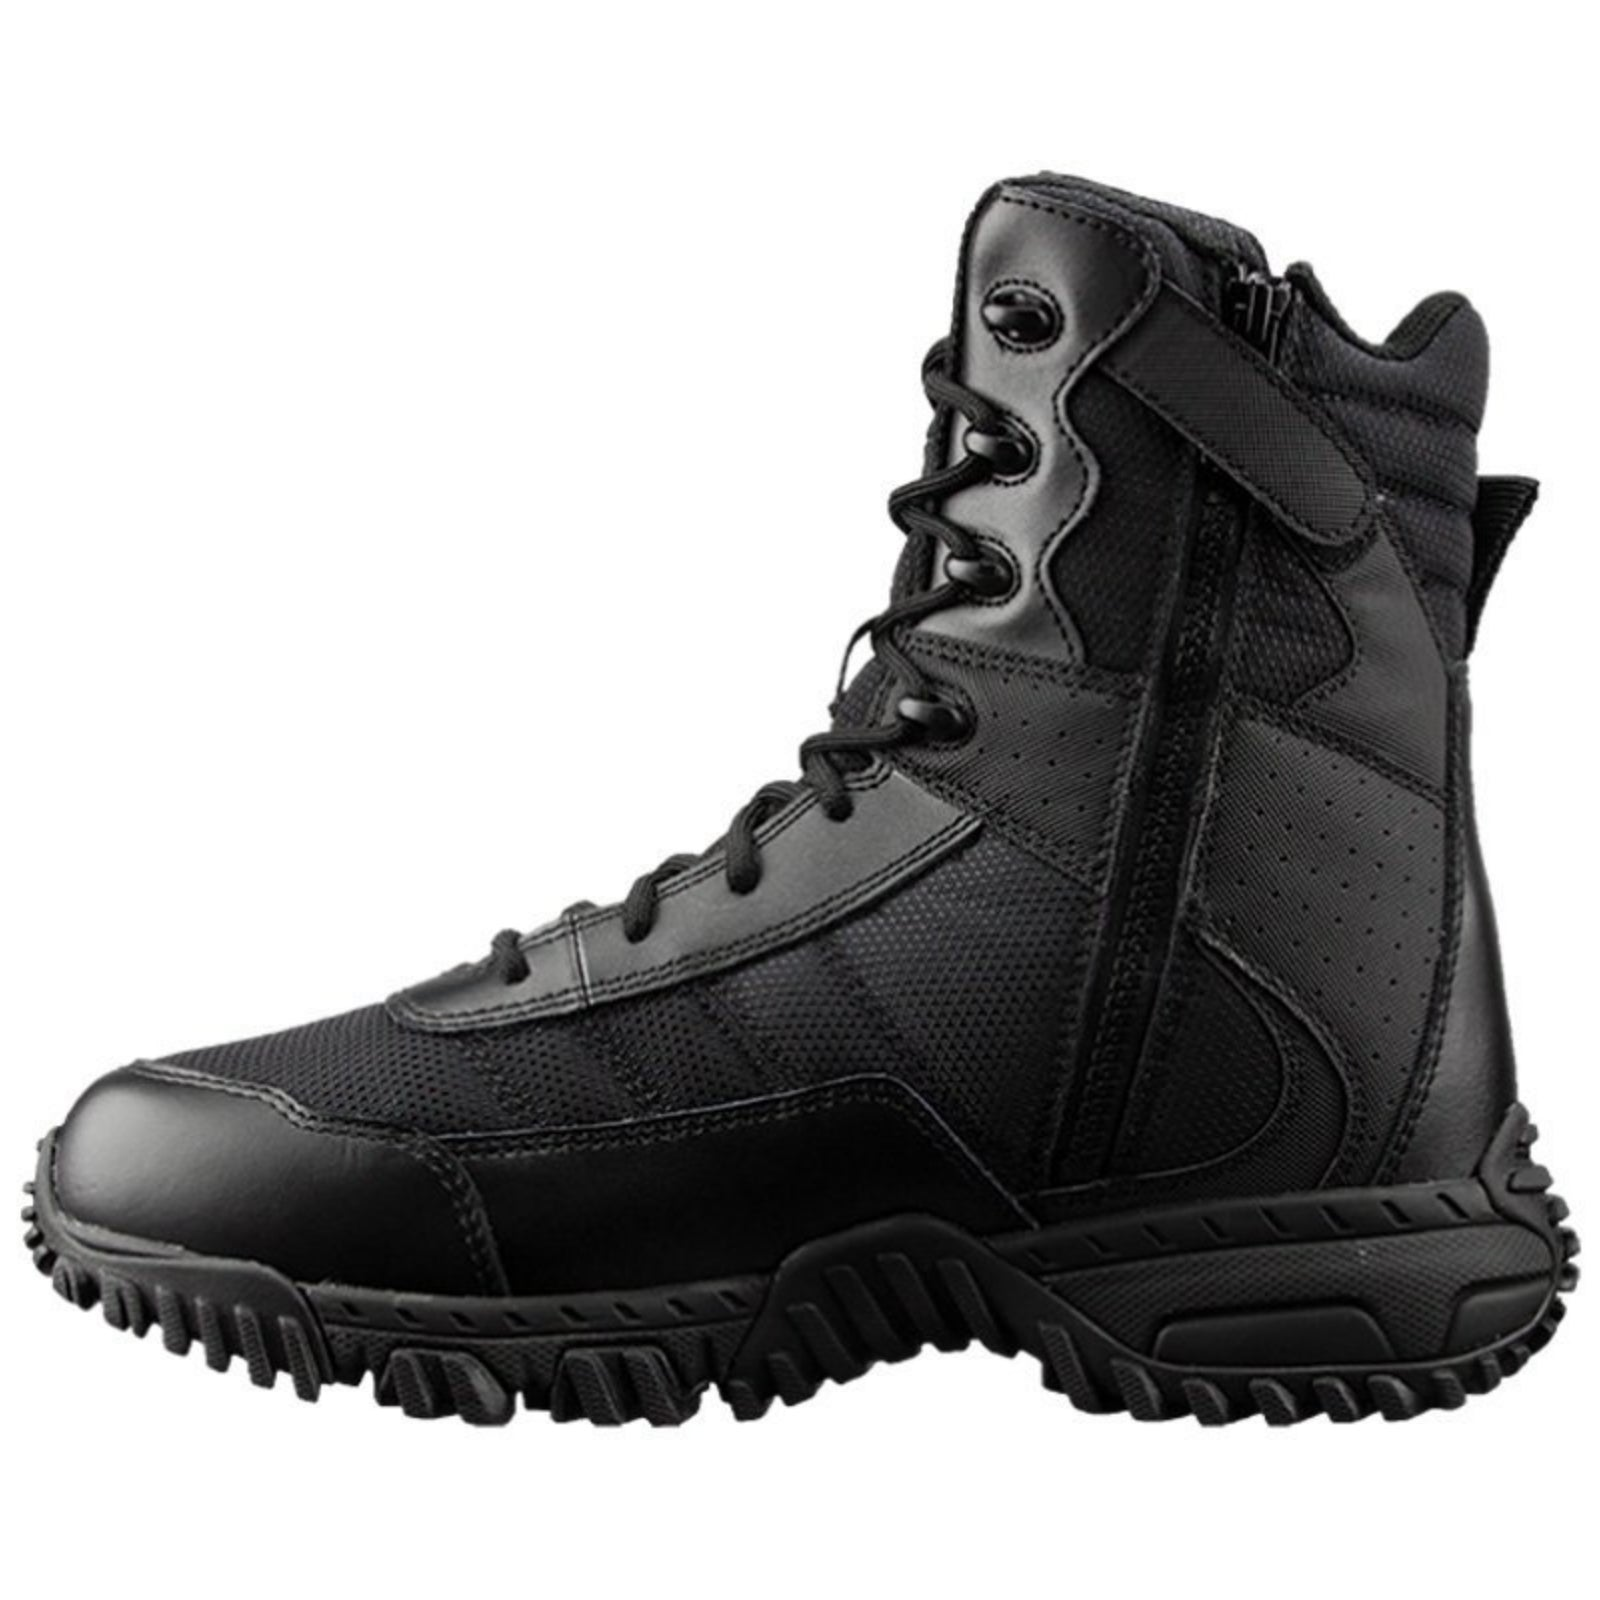 "Altama 305301 Men's Vengeance SR 8"" Side-Zip Boots, Black"